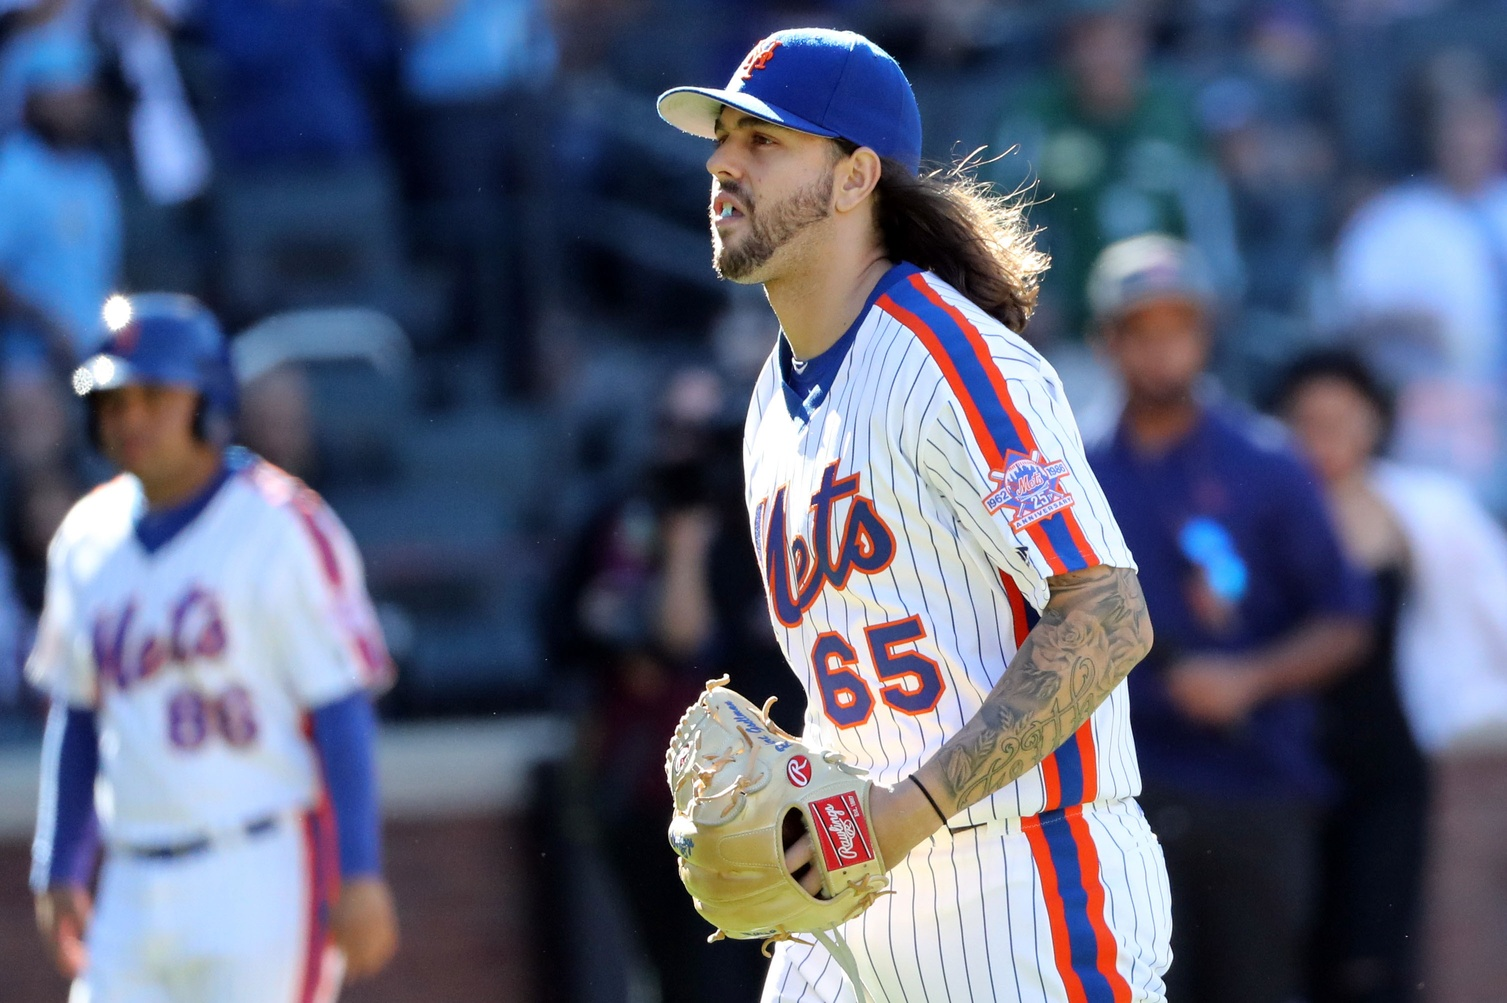 New York Mets: Robert Gsellman could be primed for big role in 2017